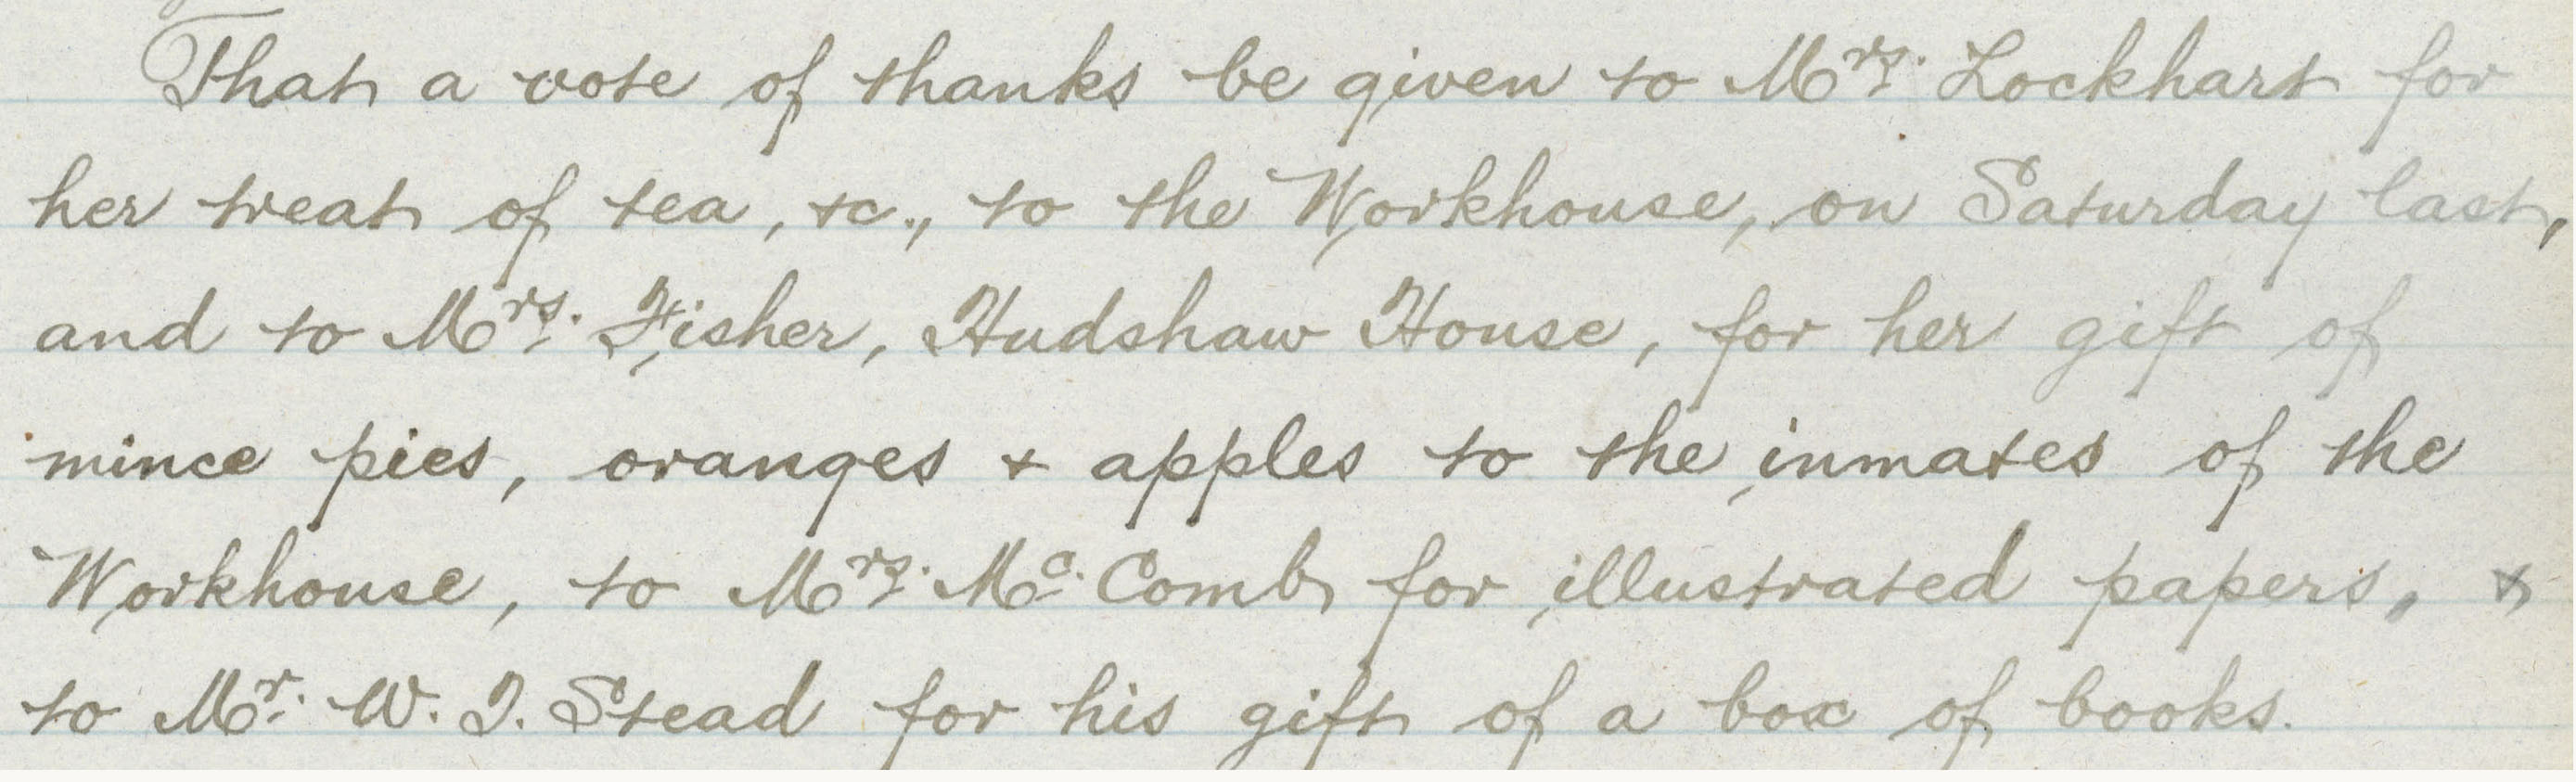 Treats from patrons Christmas 1900 GHE/12